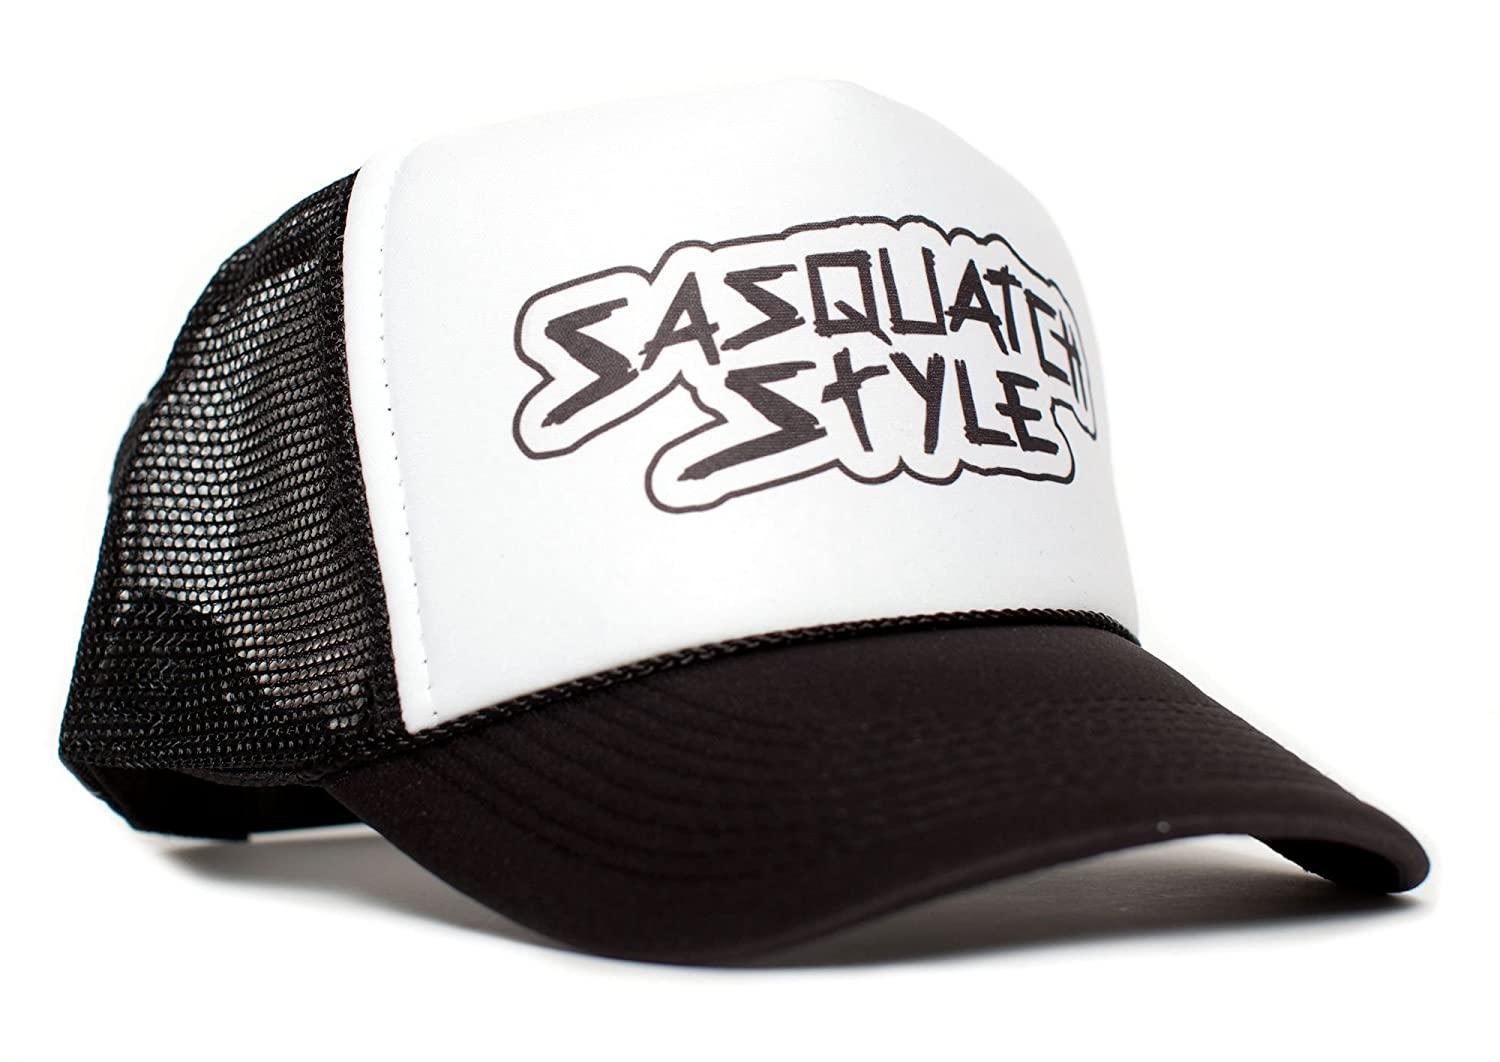 Sasquatch Style Gone Squatchin trucker hat One-Size Unisex Multi Color  Selection (Black White) at Amazon Men s Clothing store  b51ec1b5aa4